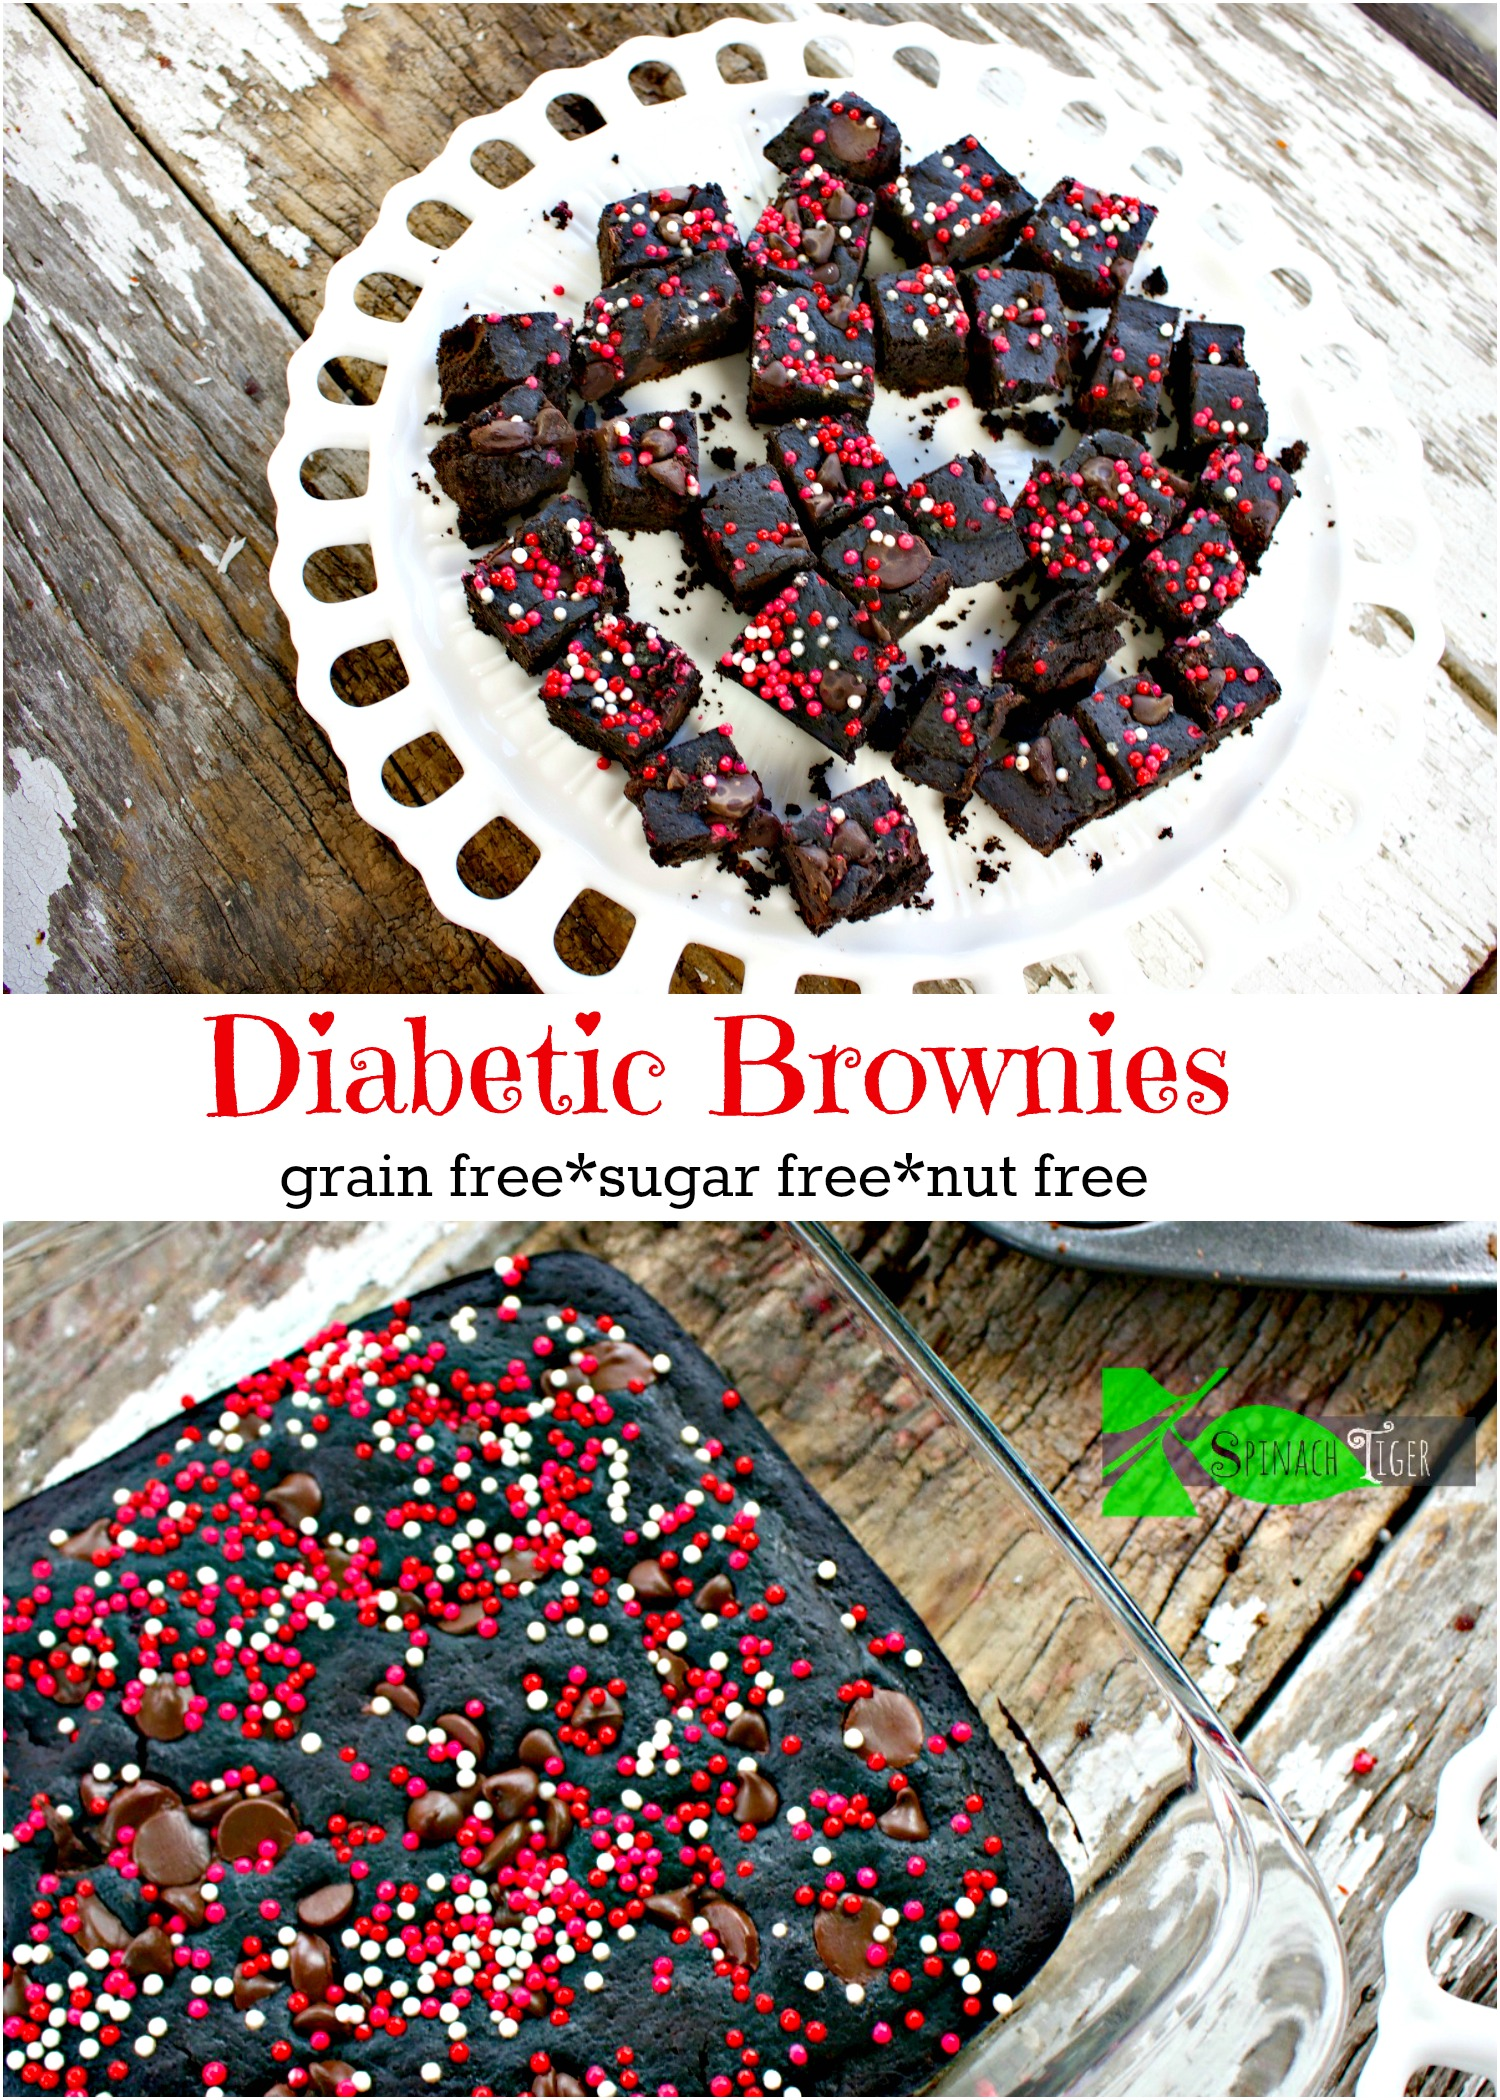 How to Make Diabetic Brownies from Spinach Tiger